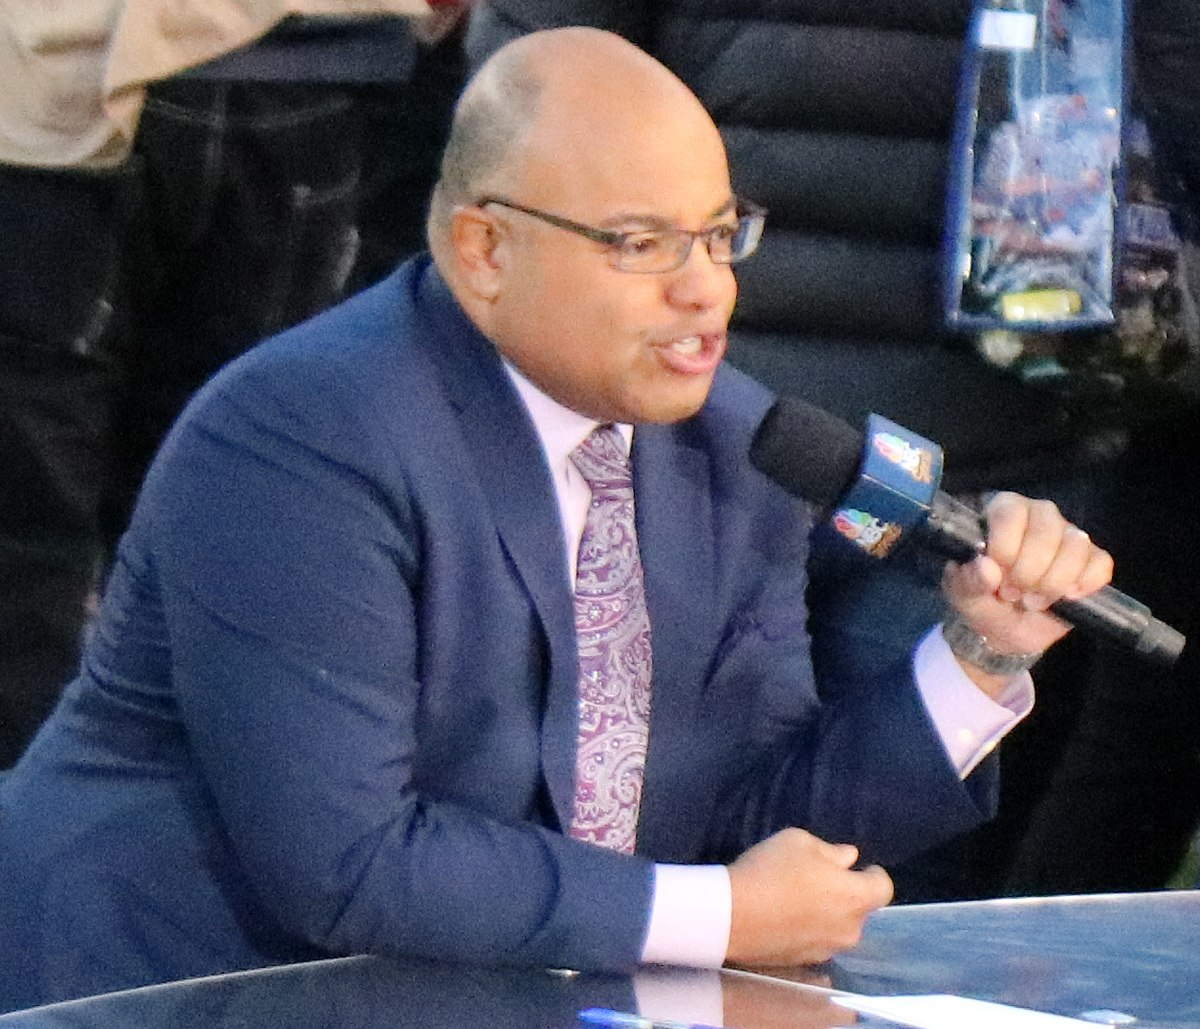 Mike tirico sexual harassment